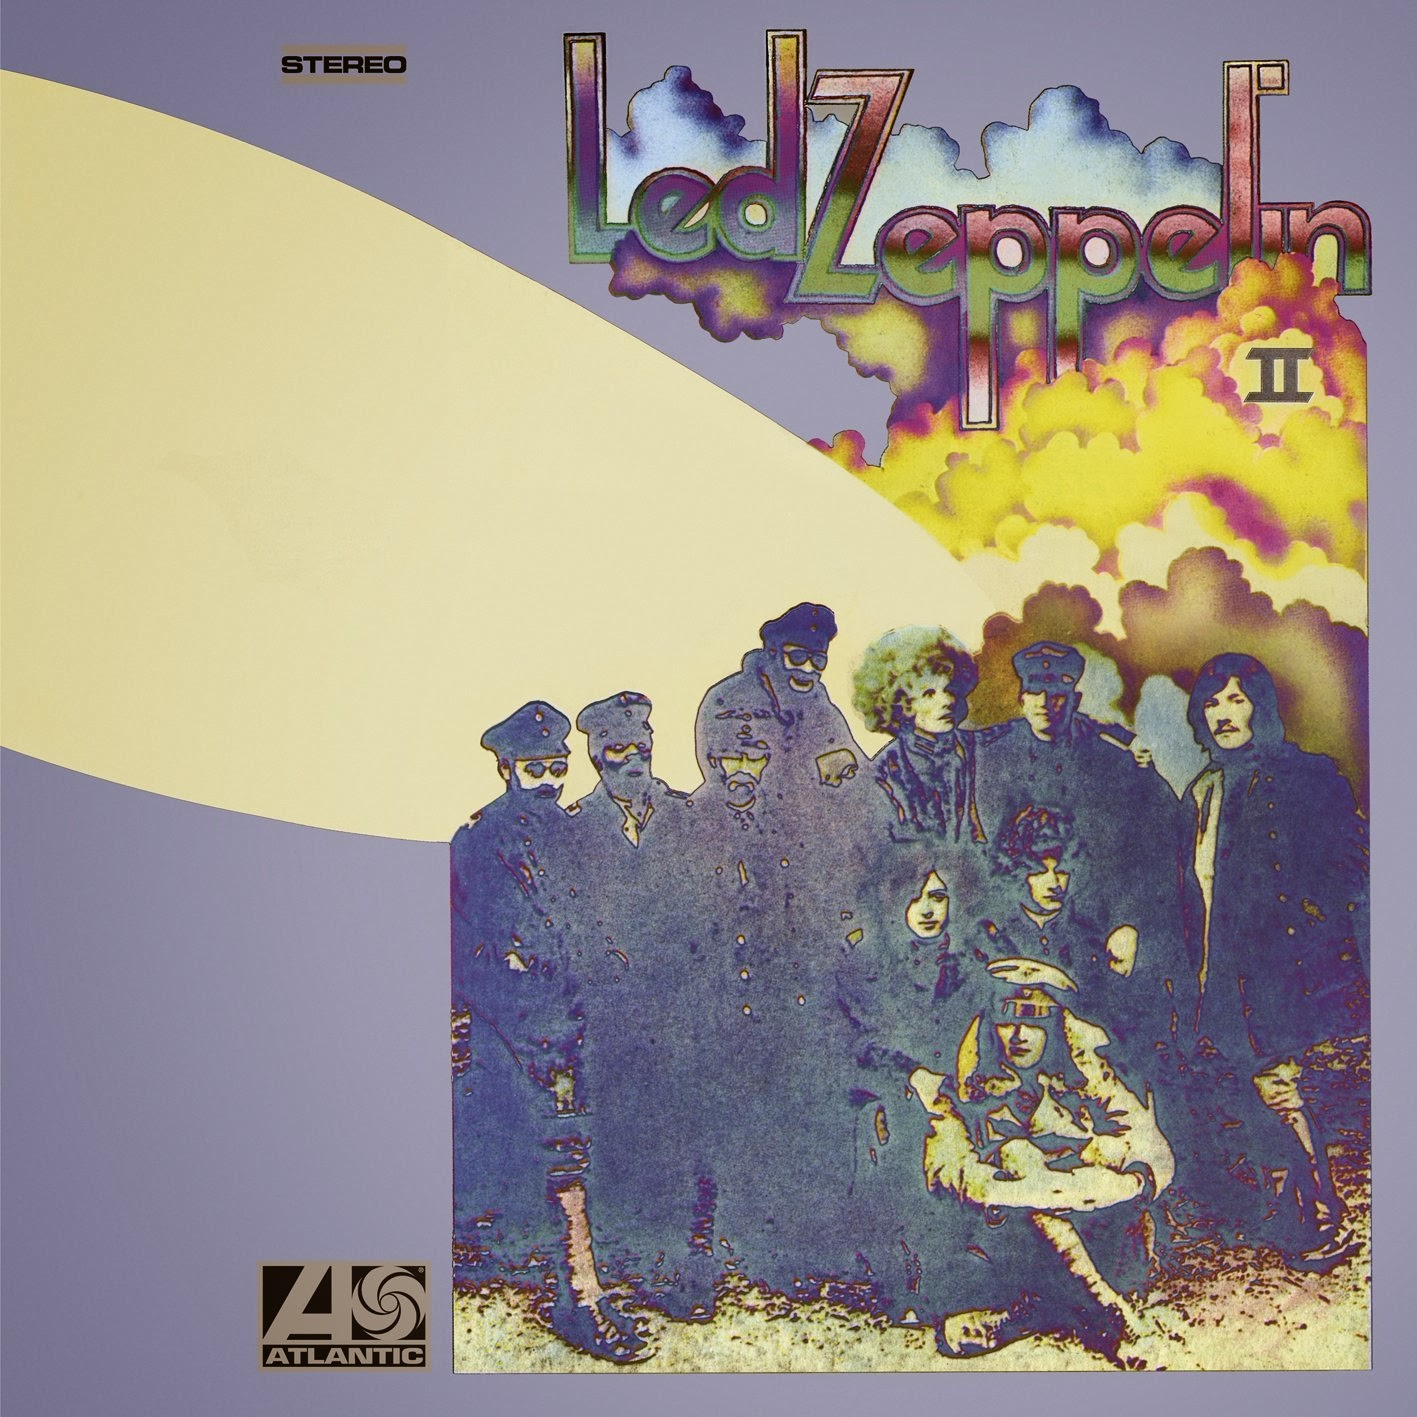 rockerparis led zeppelin to reissue first three albums newly remastered on june 03 with. Black Bedroom Furniture Sets. Home Design Ideas